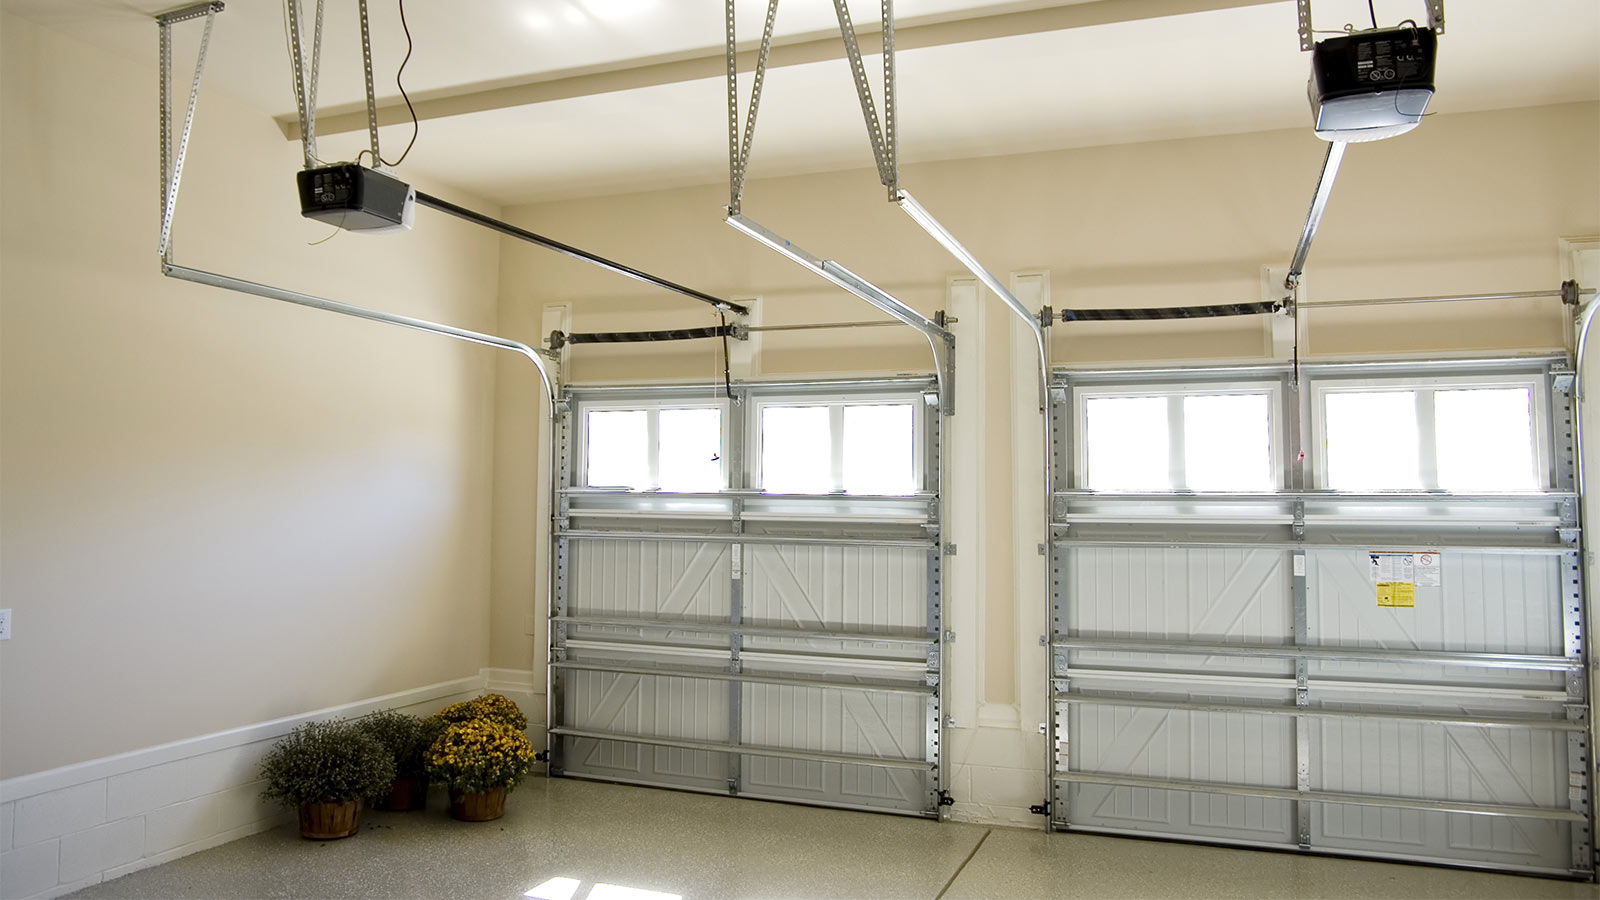 Sectional Garage Doors from Window Roller Shutters Billericay suppliers.